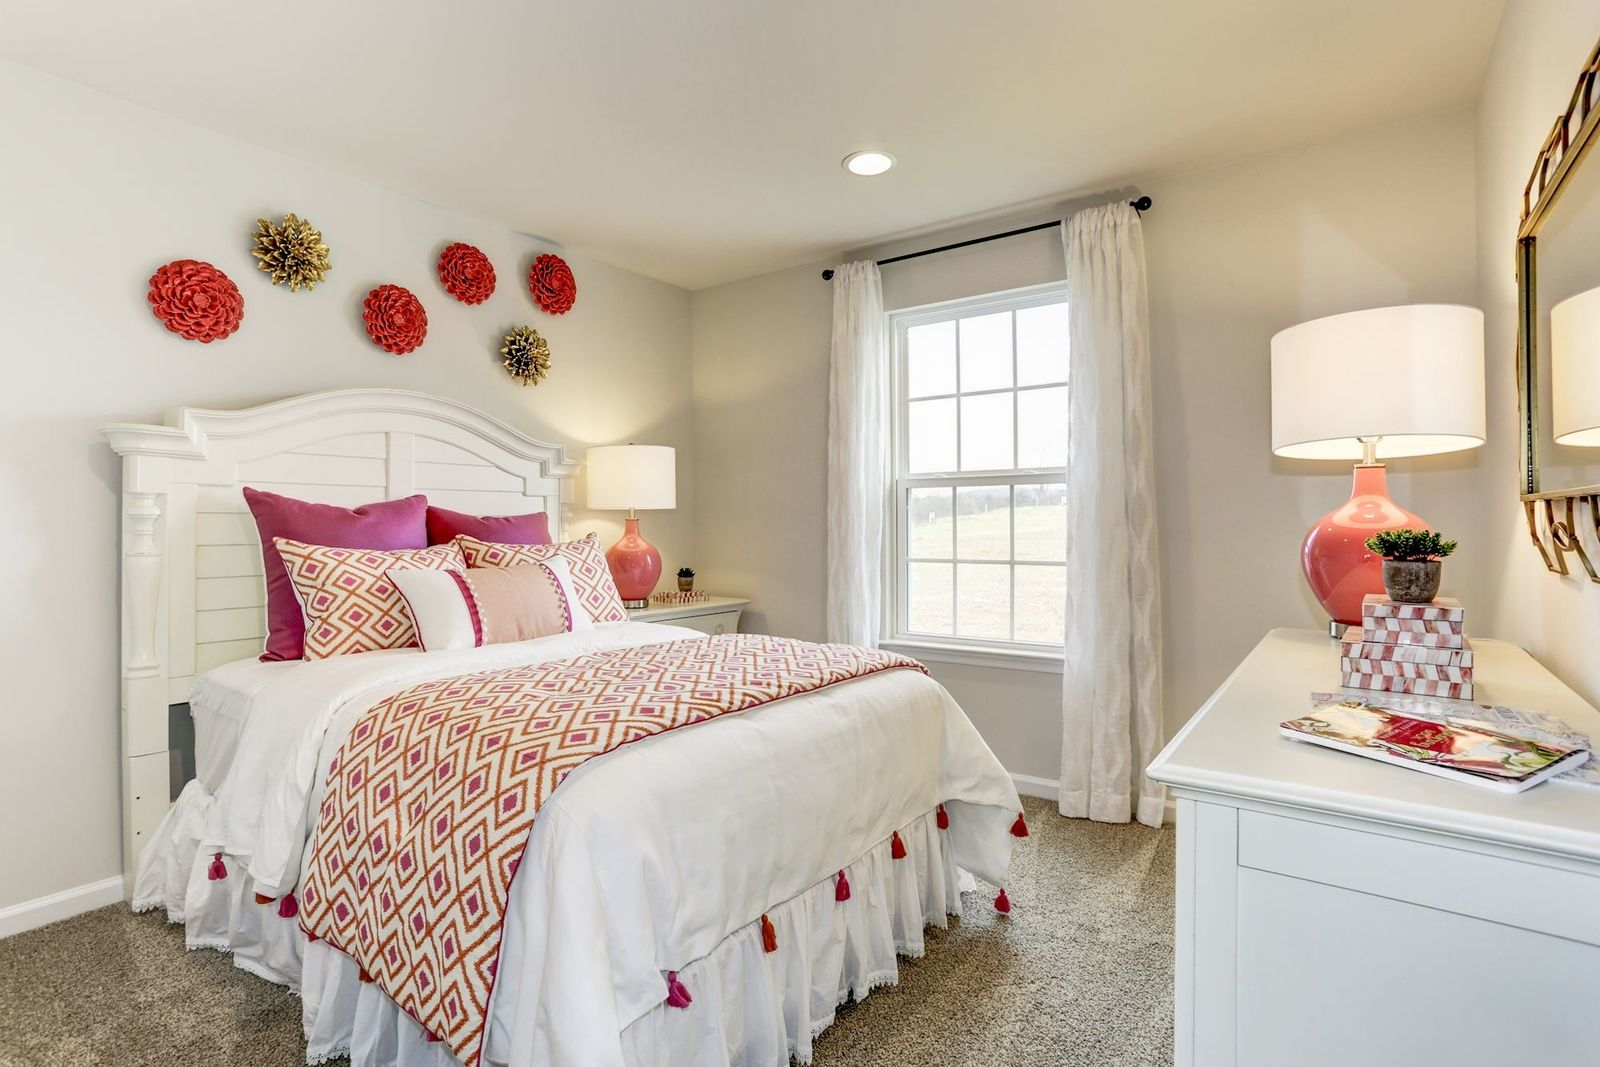 Bedroom featured in the Aviano By Ryan Homes in Ocean City, MD